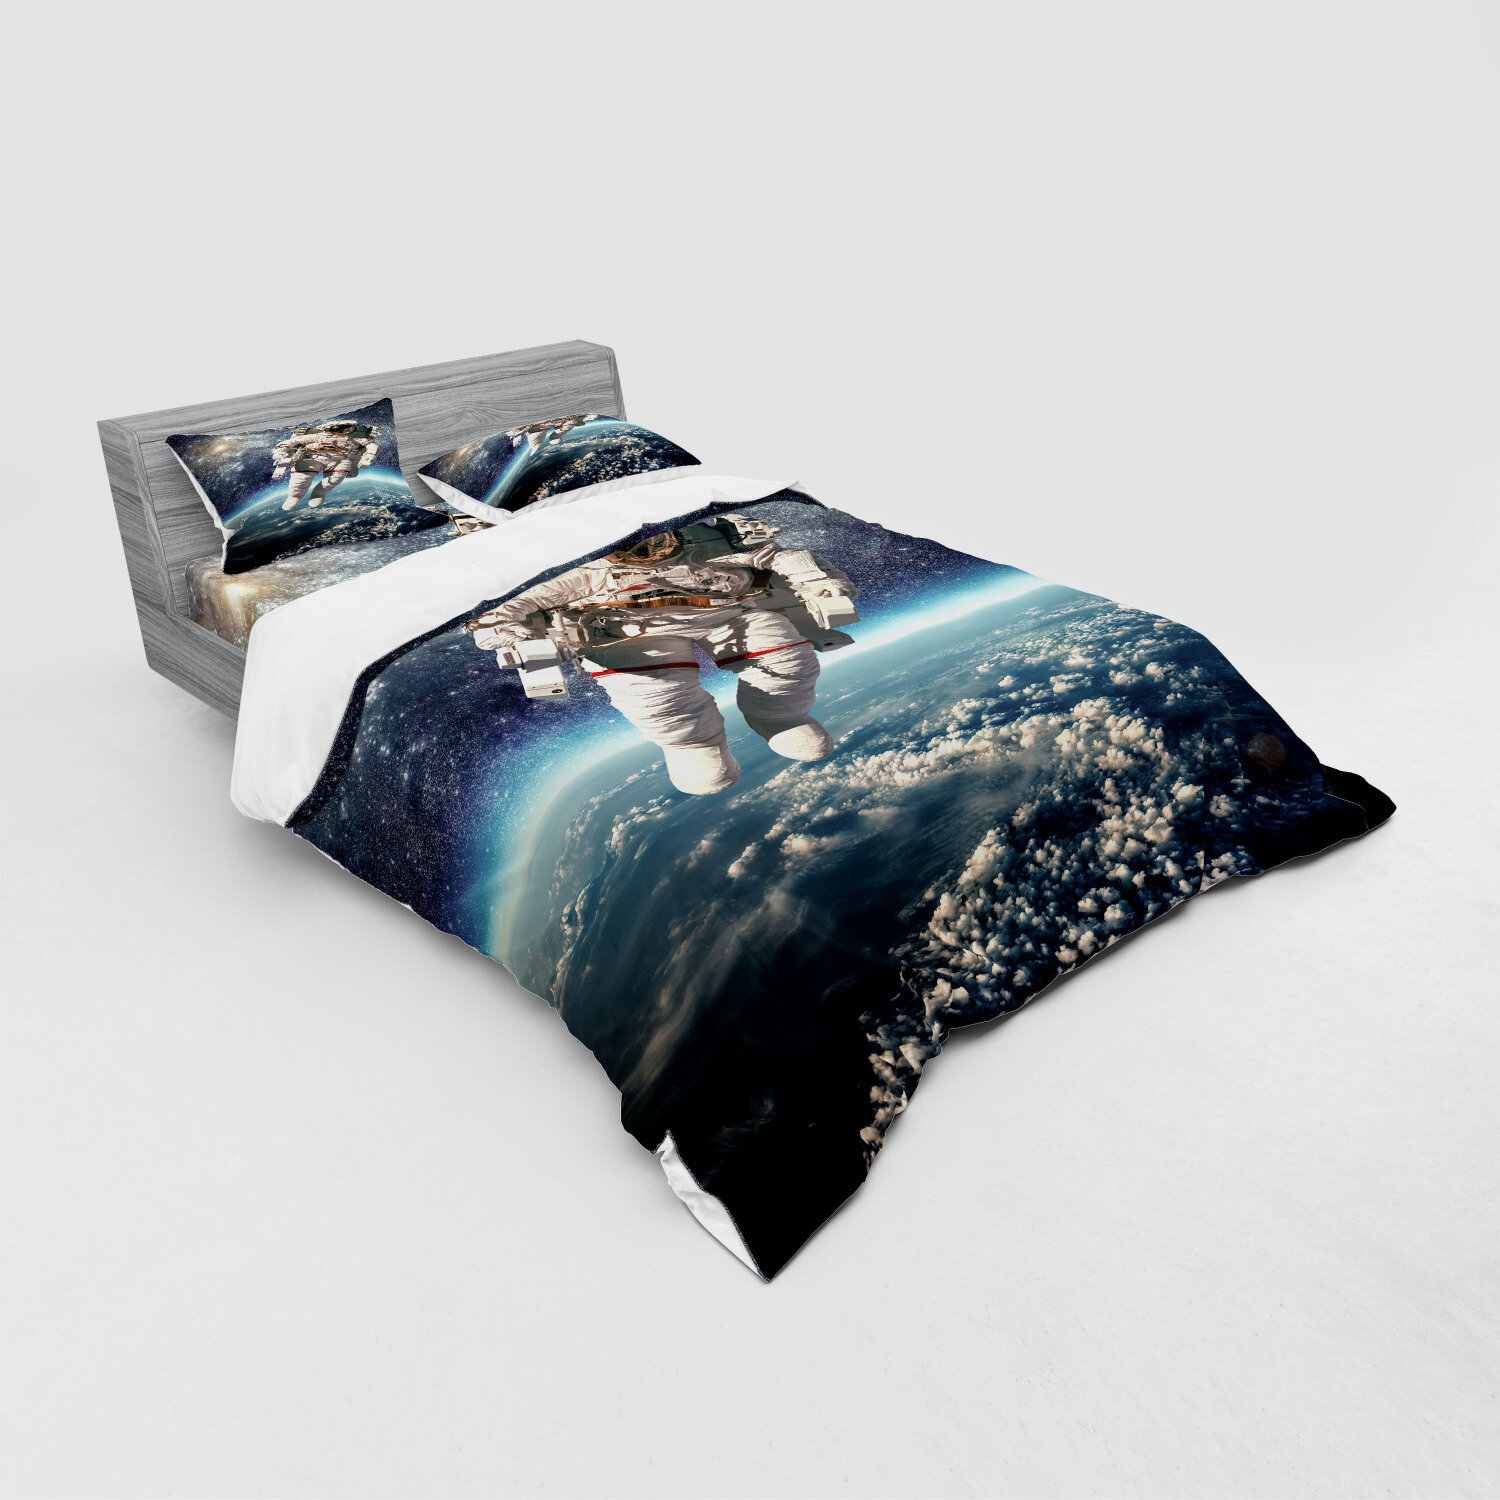 Details about  /Earth Quilted Bedspread /& Pillow Shams Set Globe Of Earth Watercolors Print